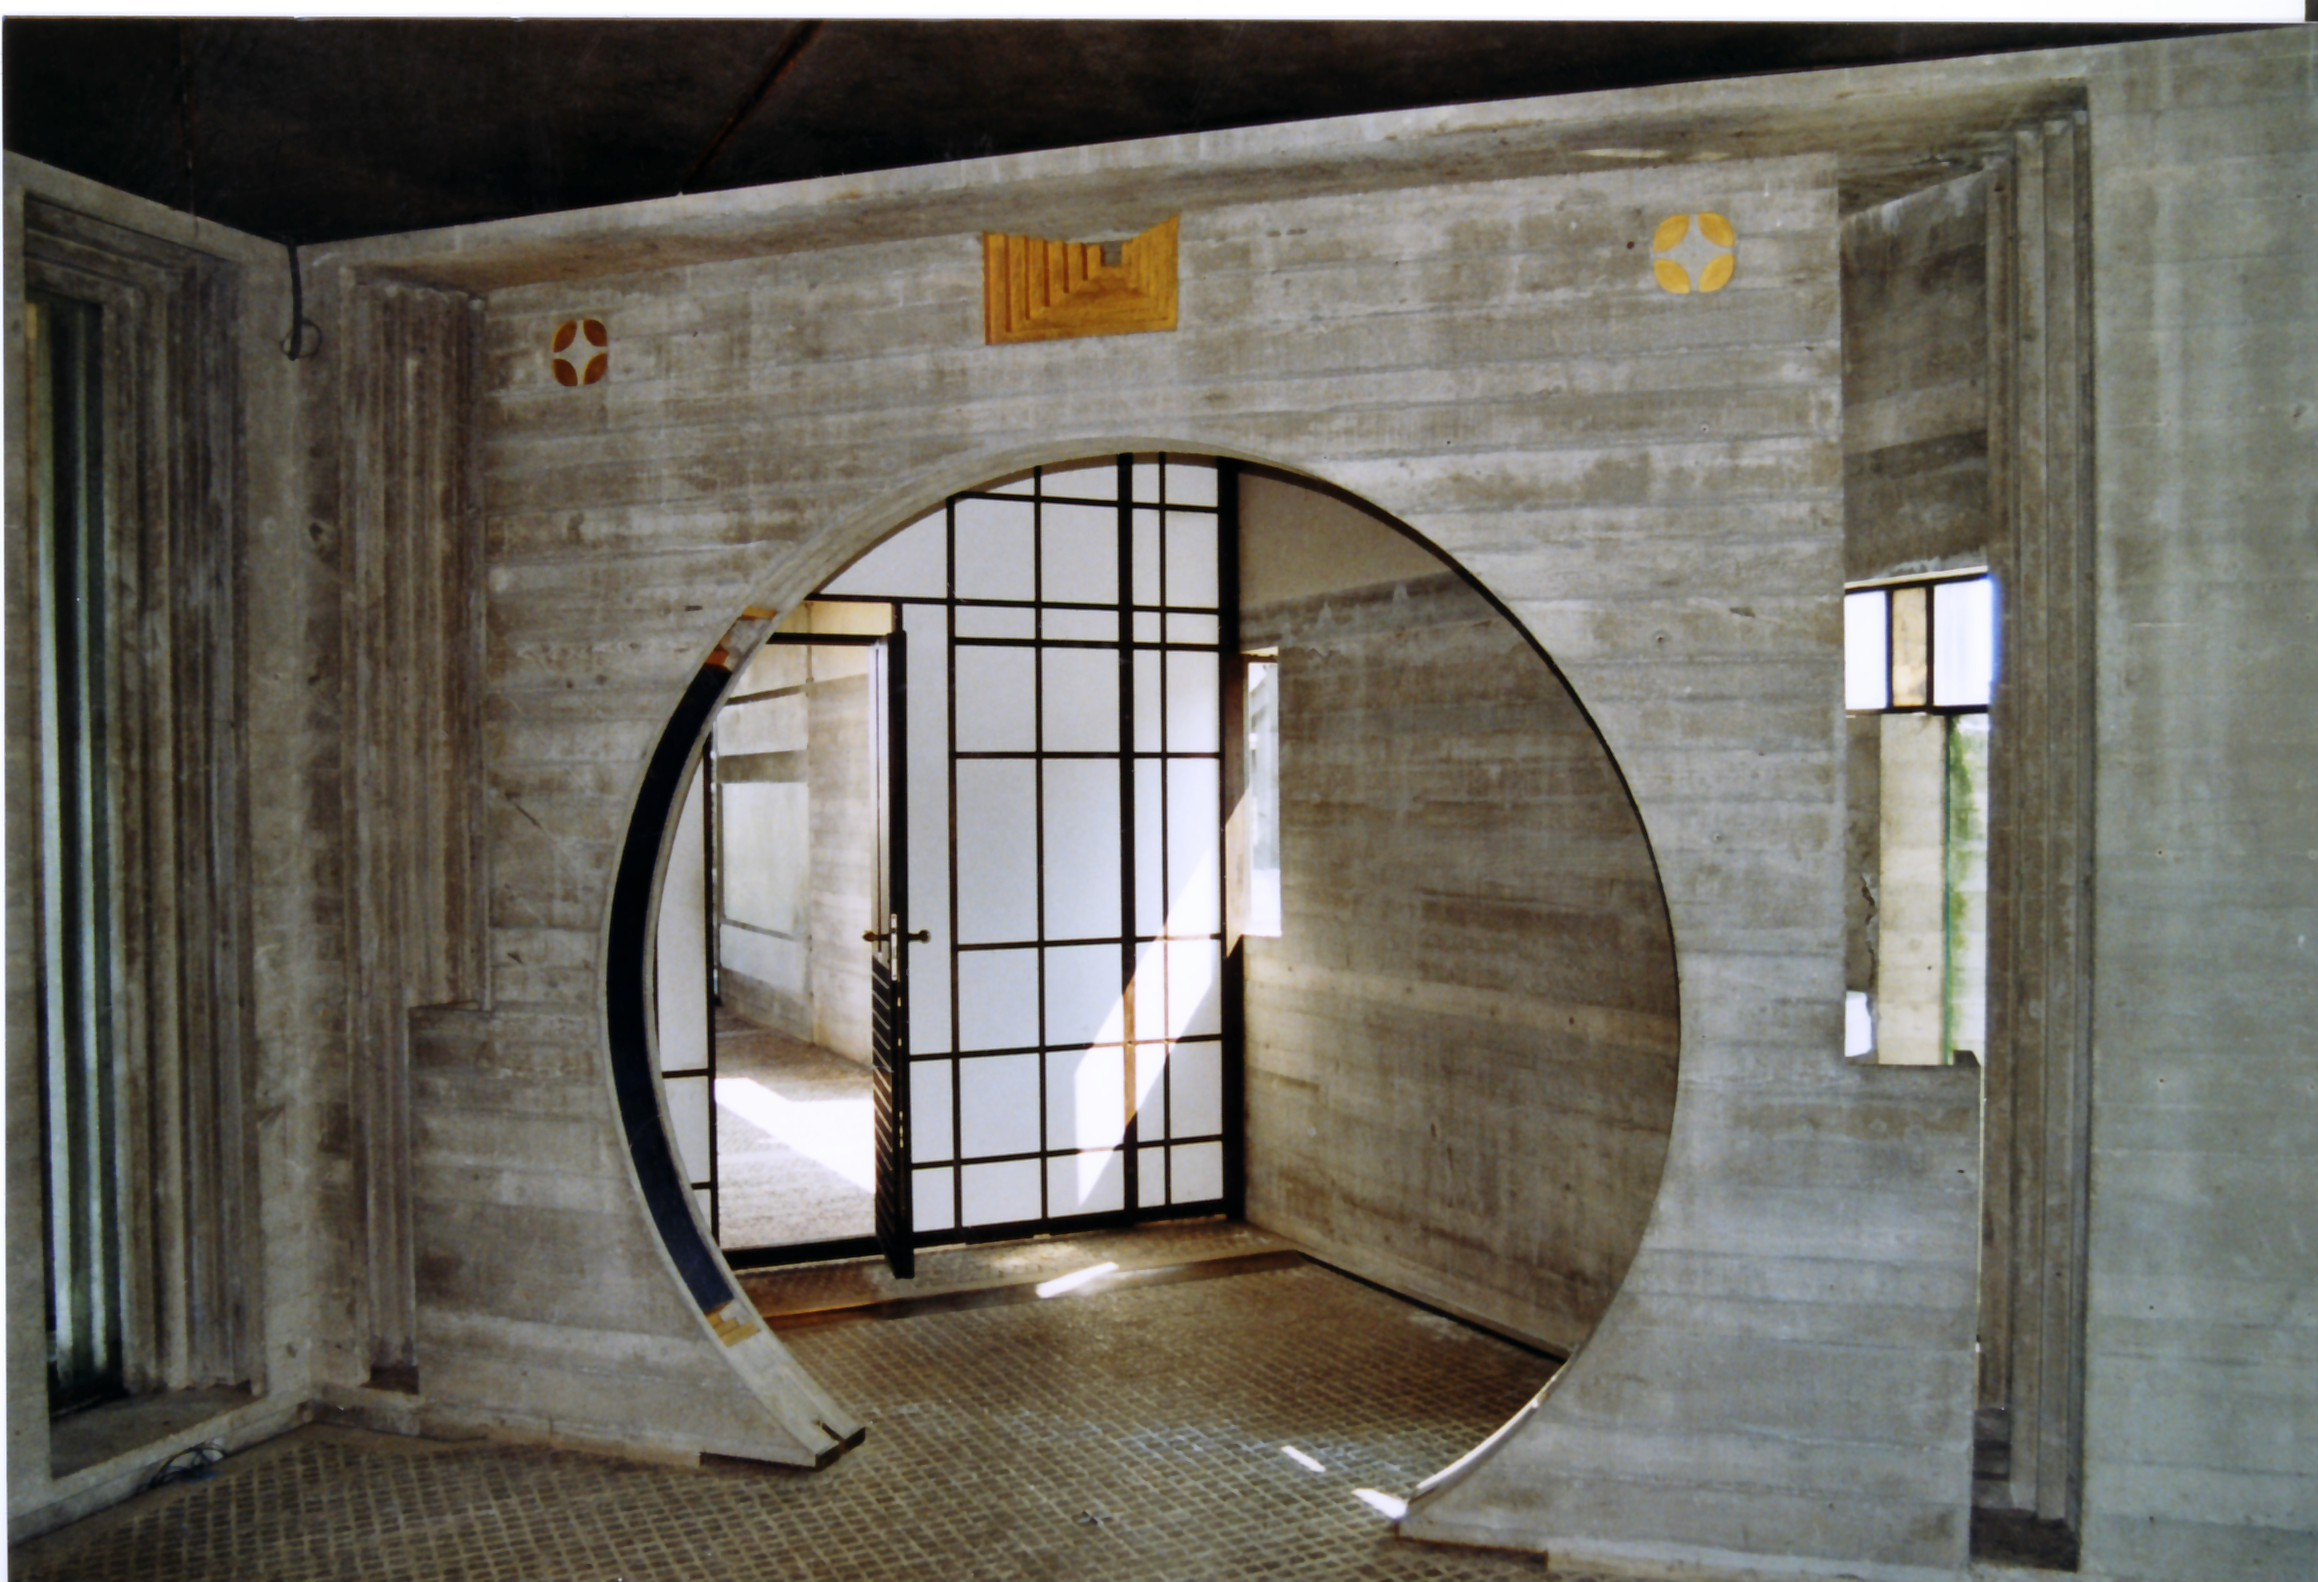 1000 images about architect carlo scarpa on pinterest carlo scarpa italy and architects - Brion design ...